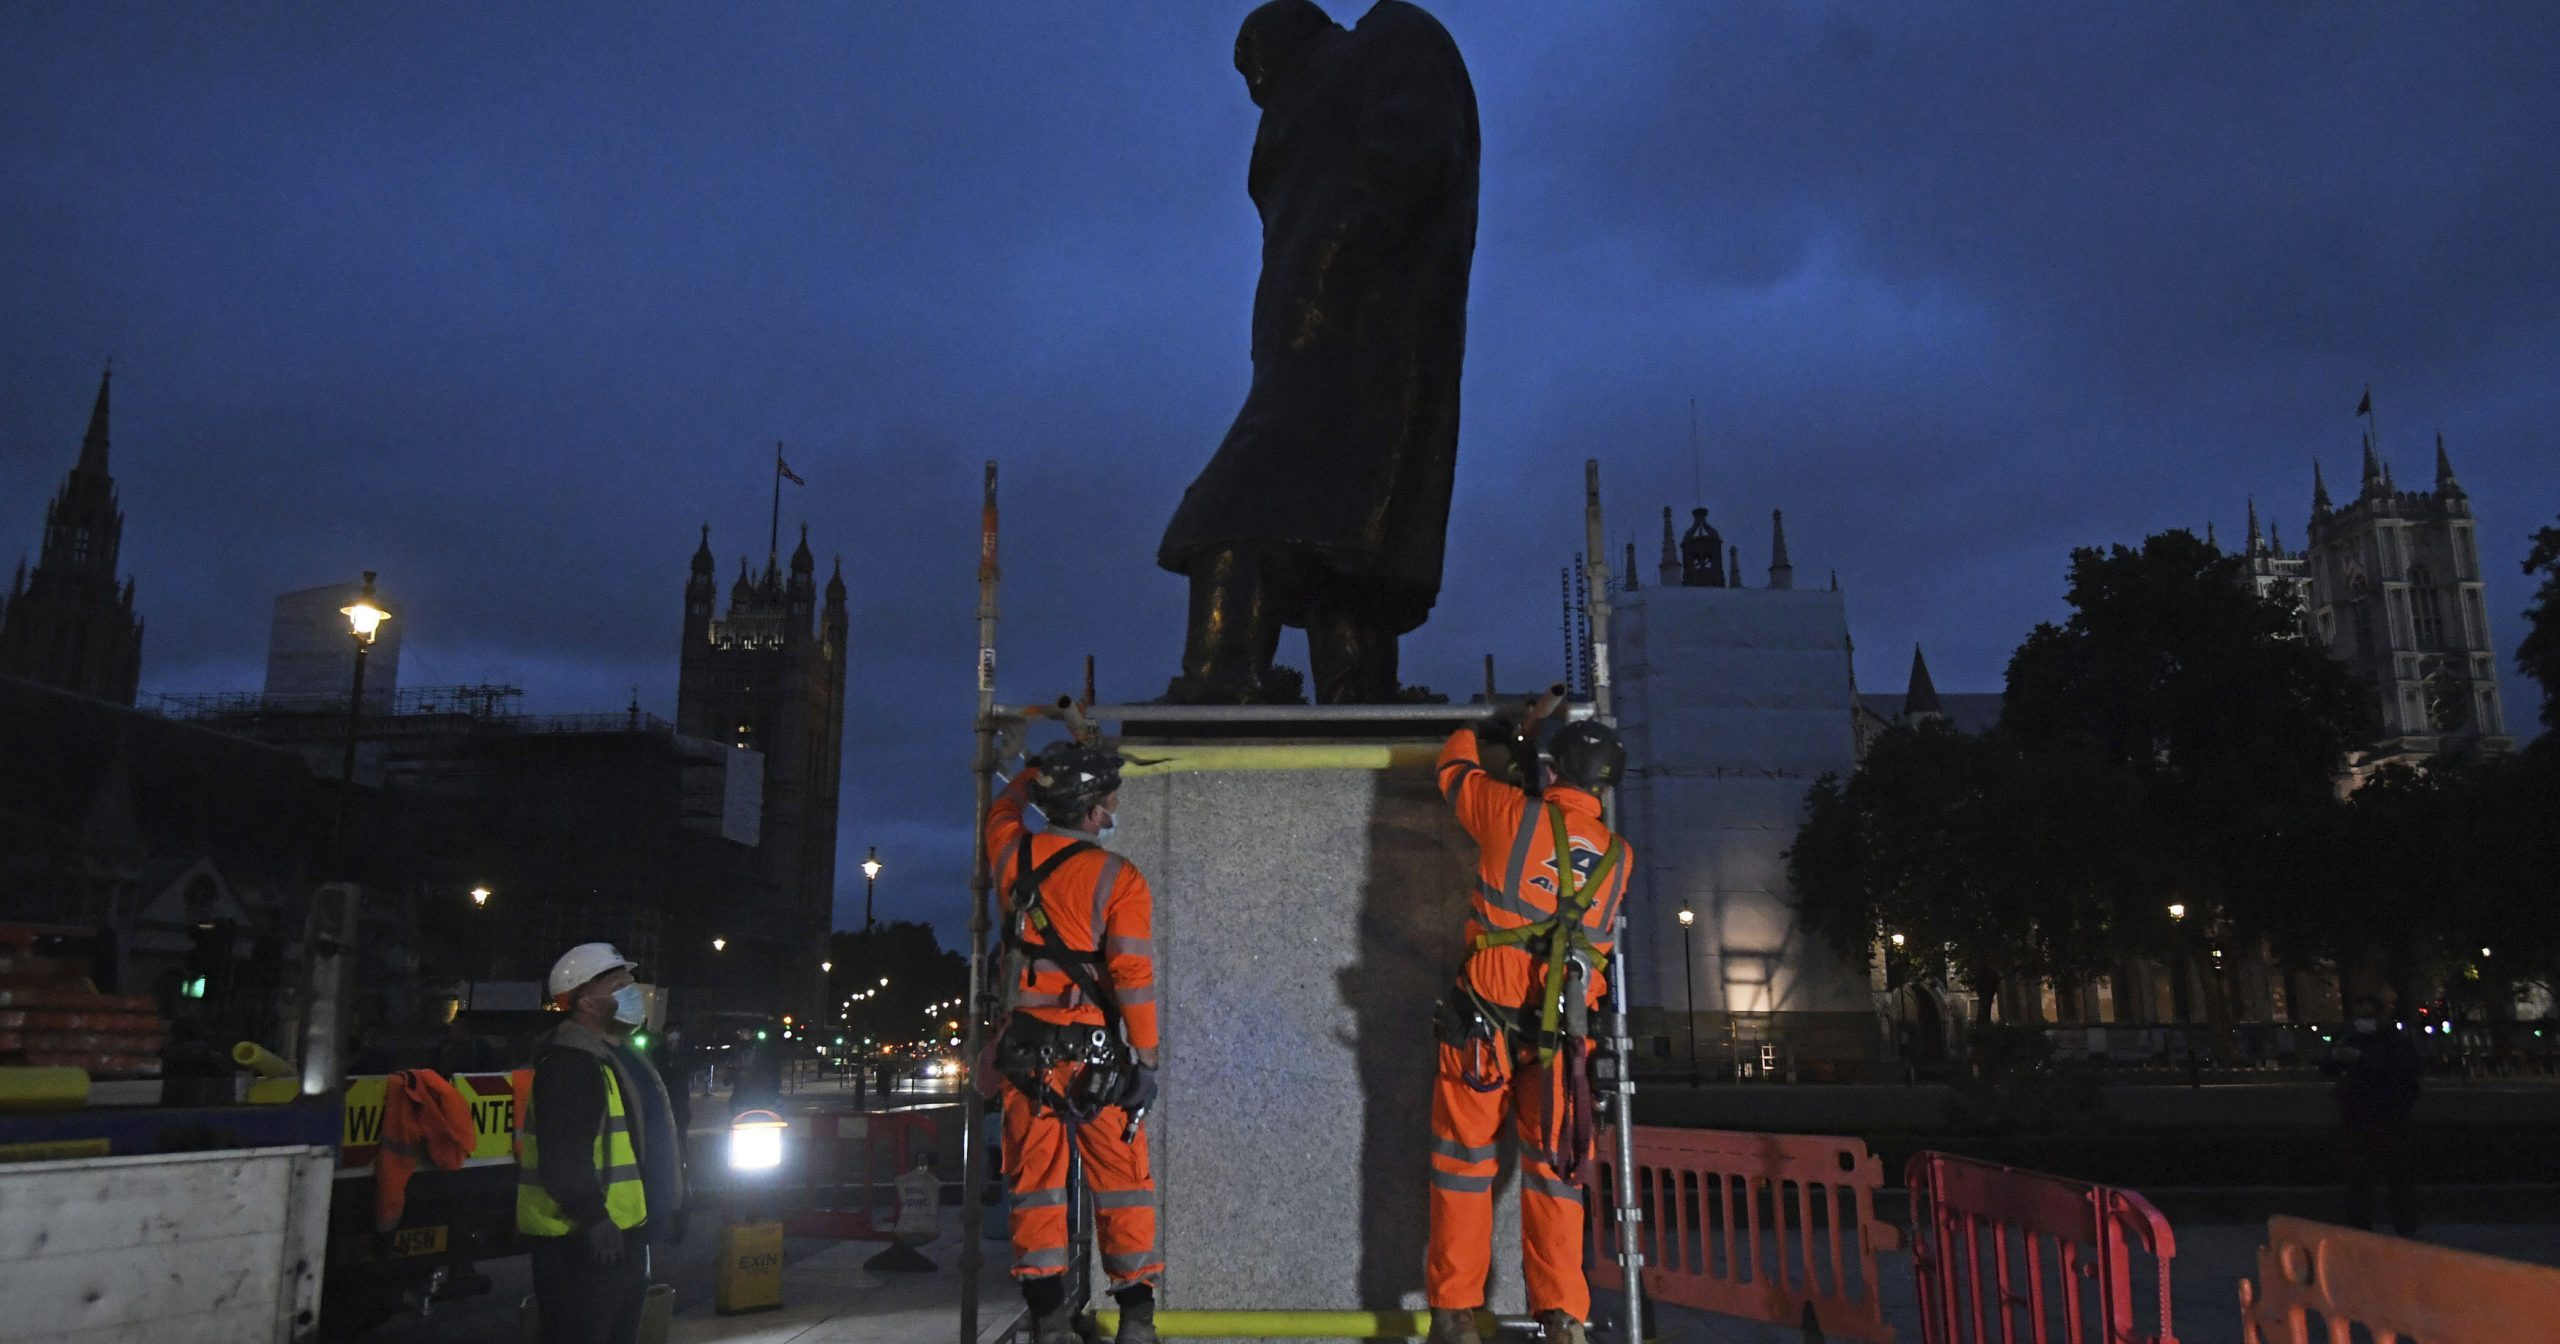 Scaffolders erect boarding around the statue of Sir Winston Churchill at Parliament Square, in London on June 11, 2020, following Black Lives Matter protests that took place across the U.K. over the weekend.